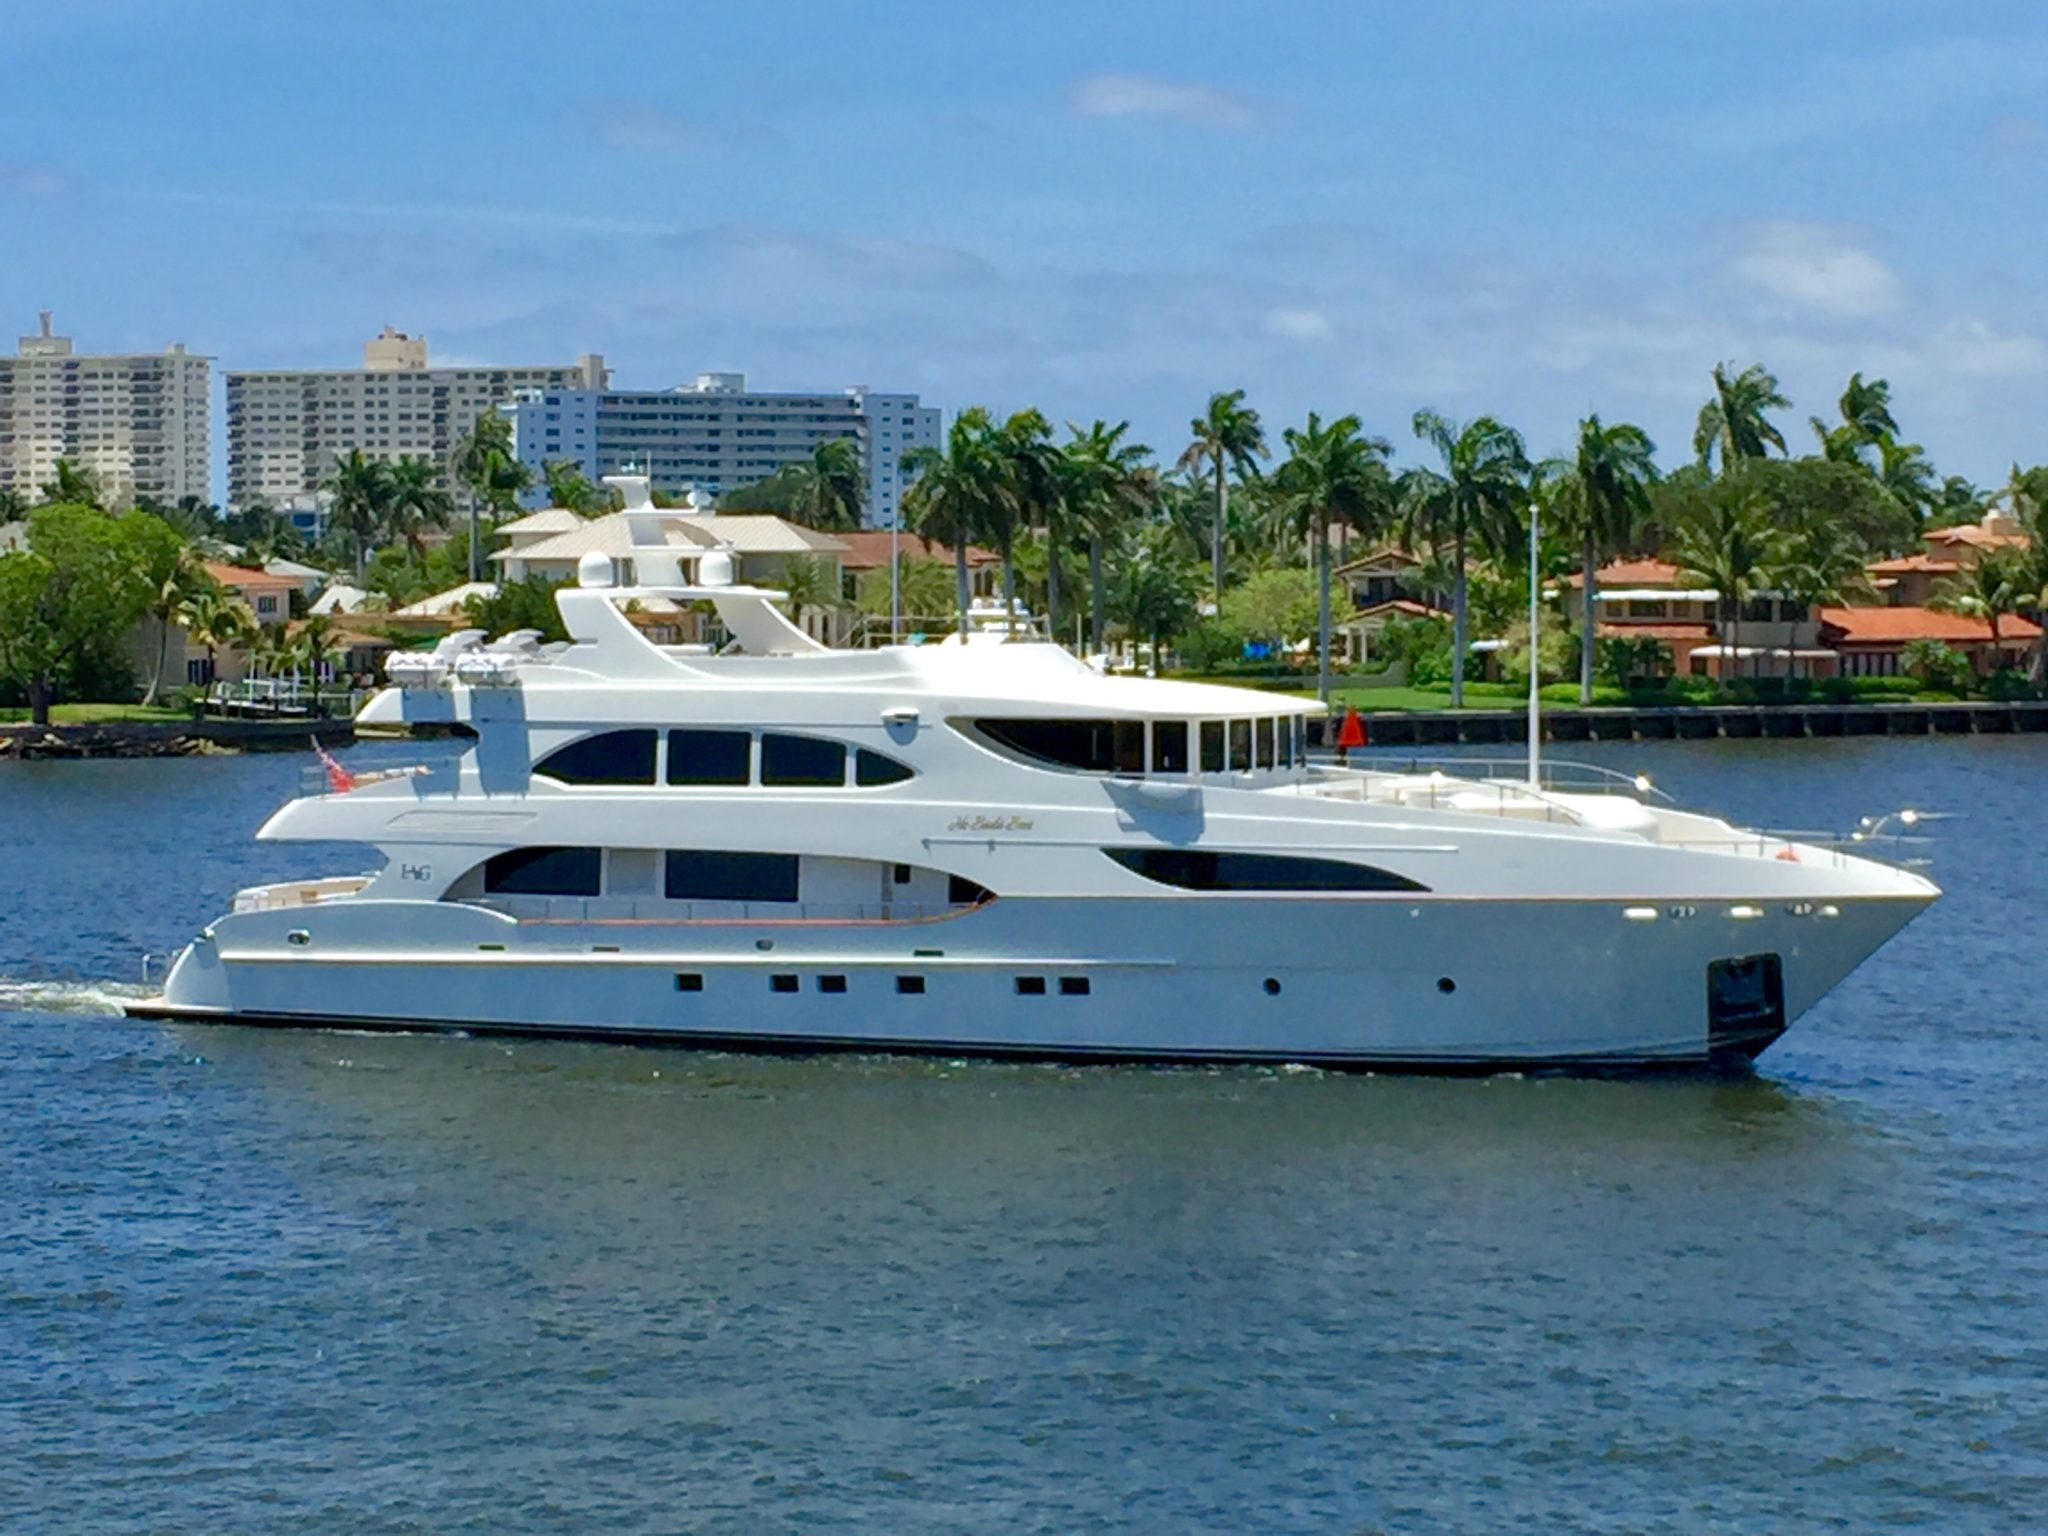 Luxury Yacht NO BADA BEES 127′ IAG 2010 For Sale